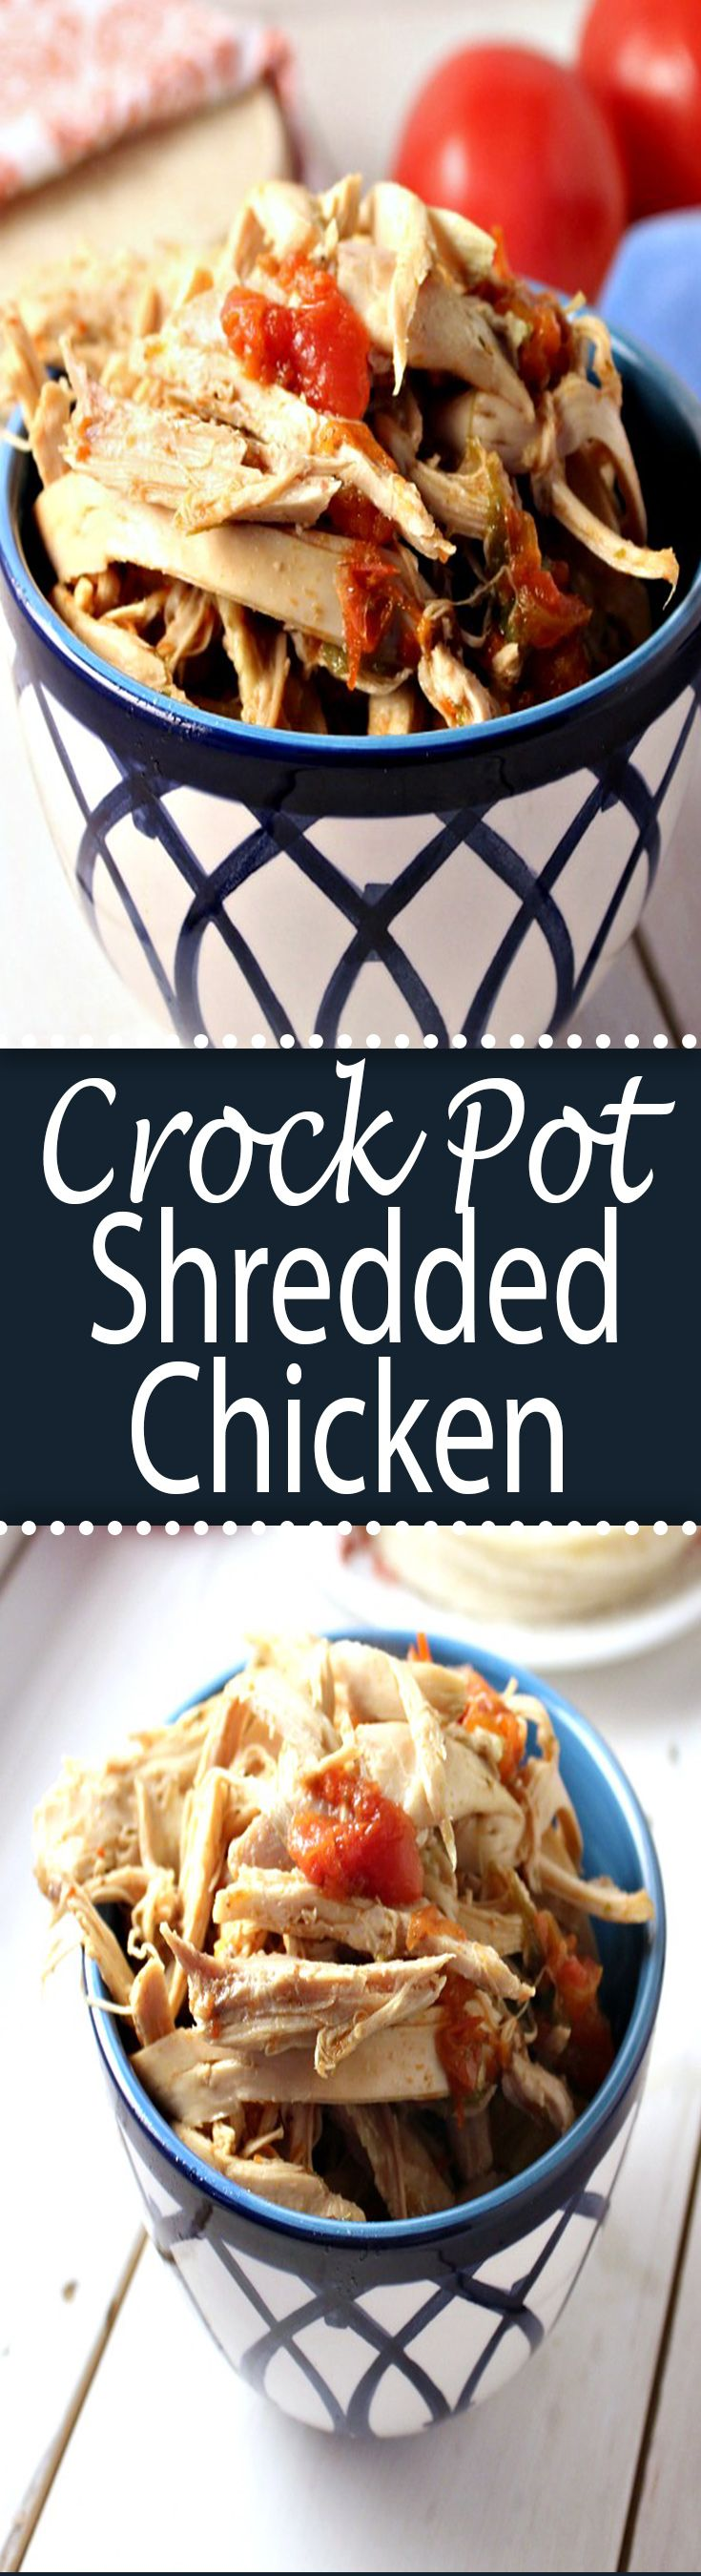 Easy mexican shredded chicken recipes